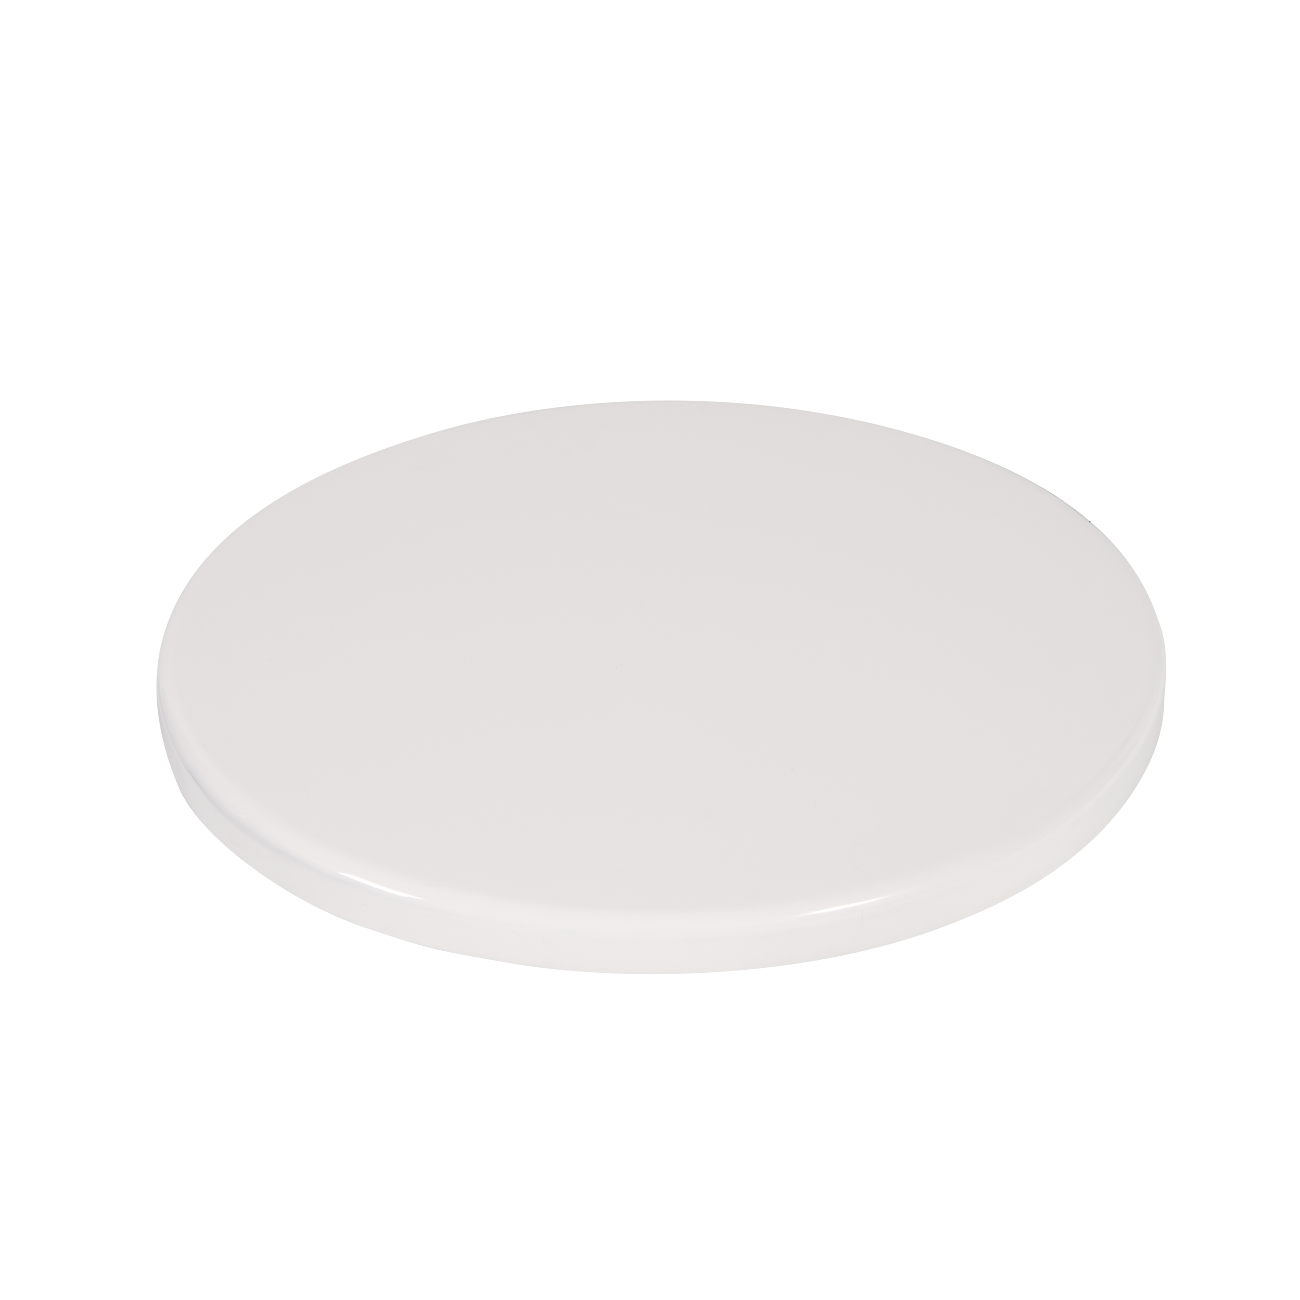 Table white table tops 36 round granite table top sesame white - 30 Round Plain White Resin Table Top Indoor Outdoor Resin Table Tops Restaurant Furniture A1 Restaurant Furniture